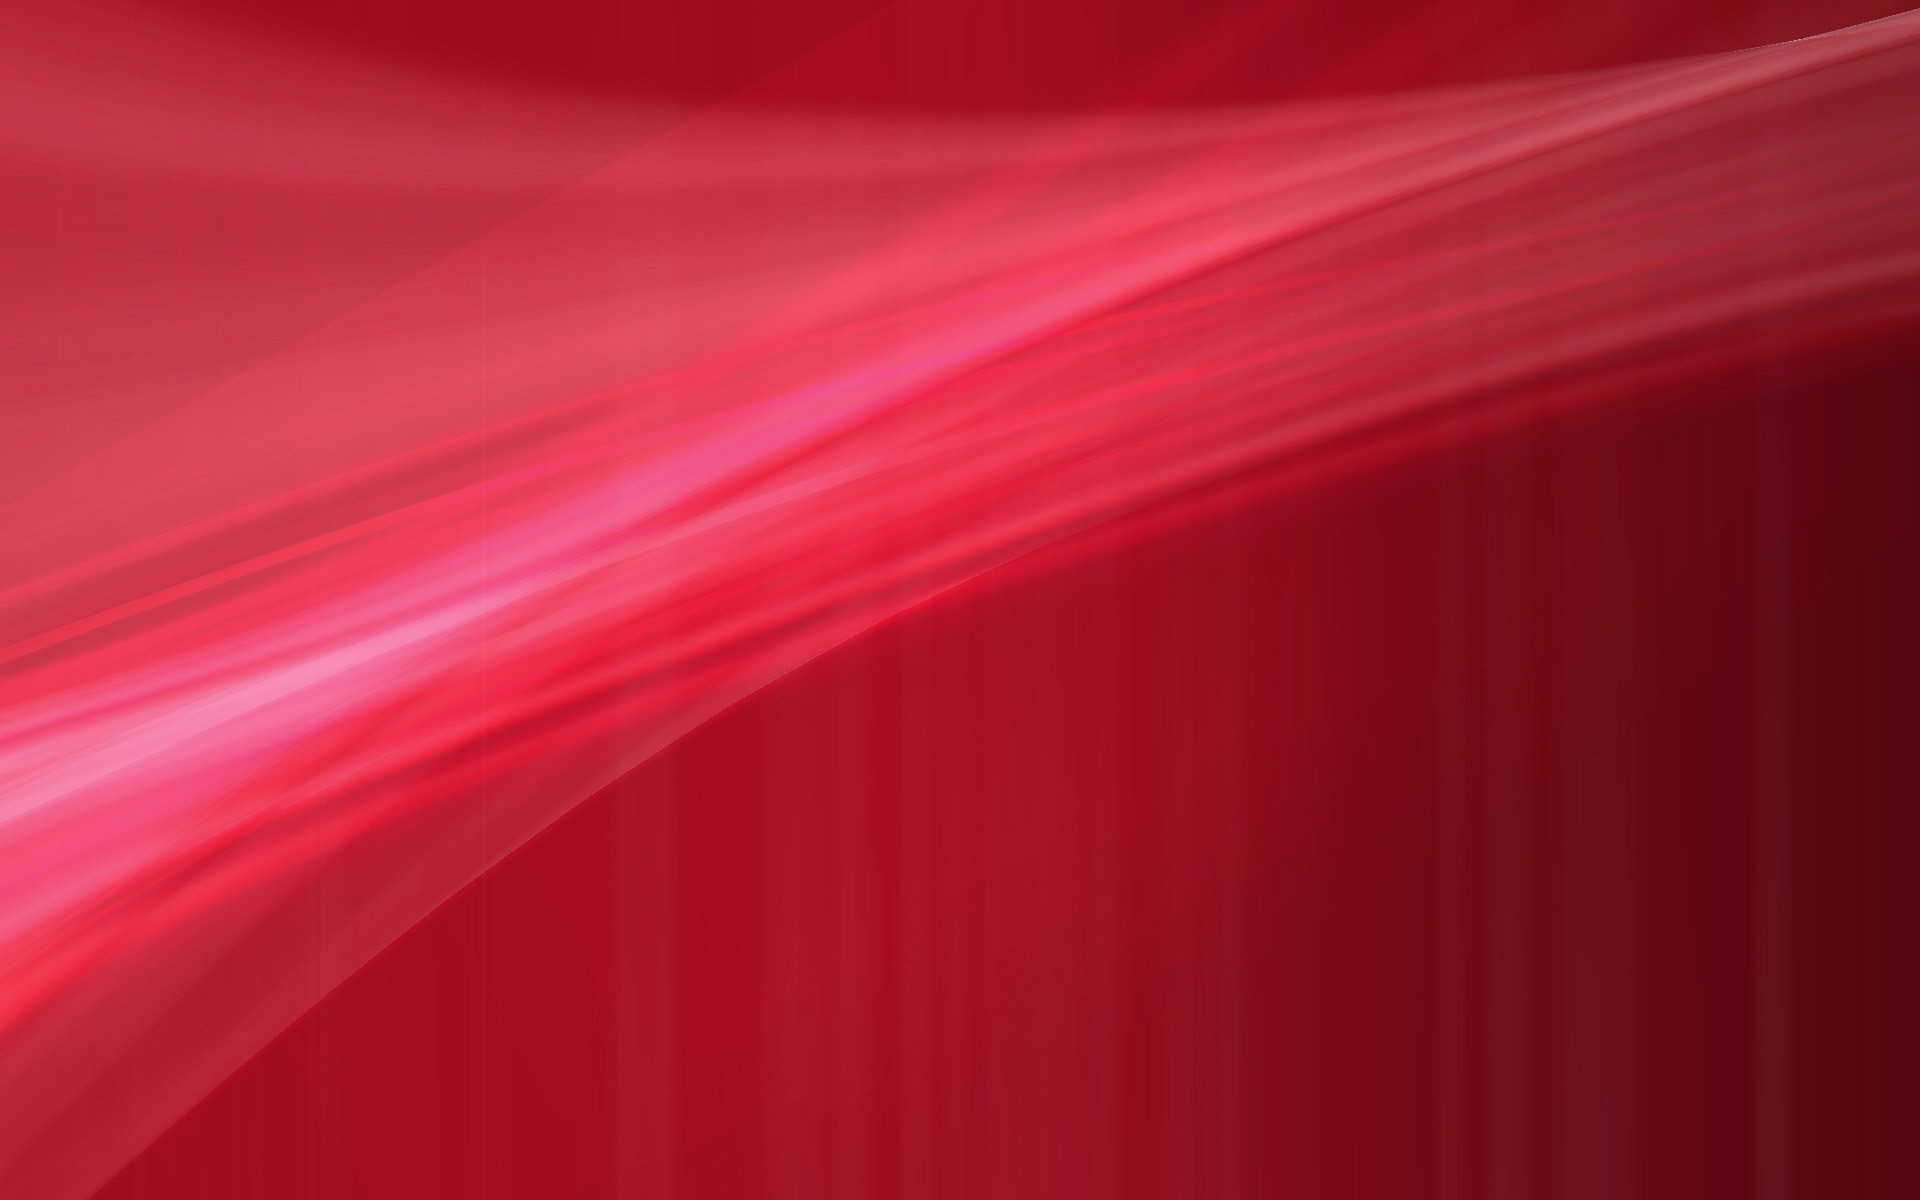 Backgrounds Wallpapers Simple Maroon Abstract HD Desktop Wallpapers 1920x1200